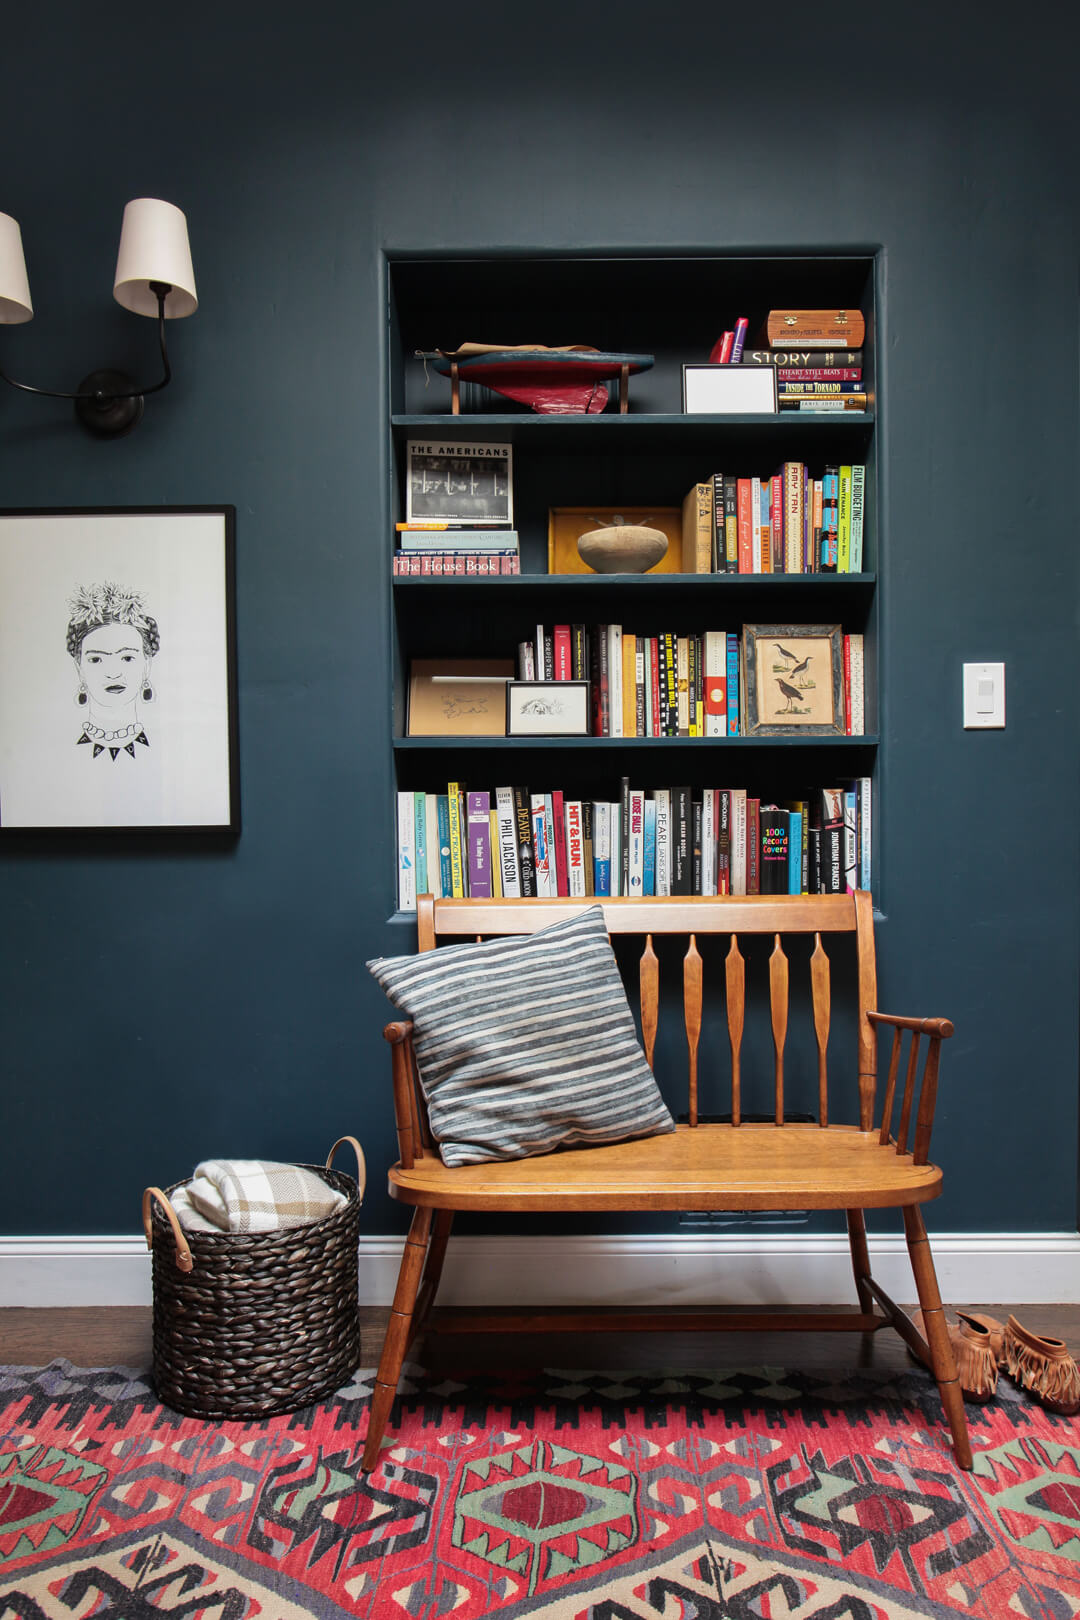 I've been loving dark paint colors lately - especially navy, deep teal and green, and dark charcoal. This modern meets traditional reading nook is a perfect example of how beautiful dark teal wall paint can be!